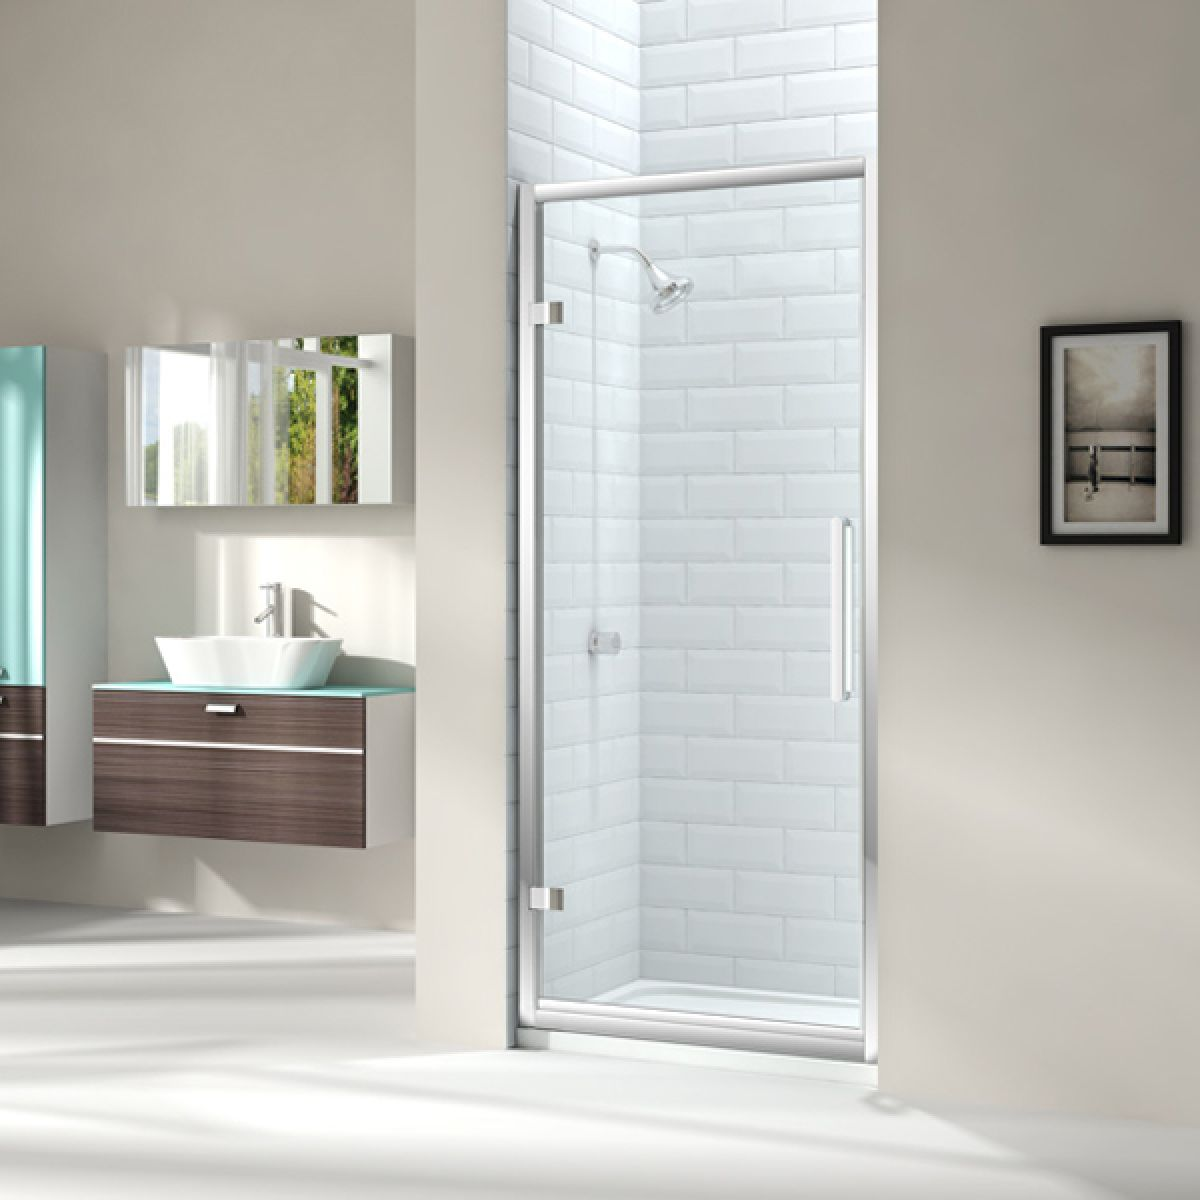 Merlyn Series 8 Hinged Shower Door with Optional Side Panel